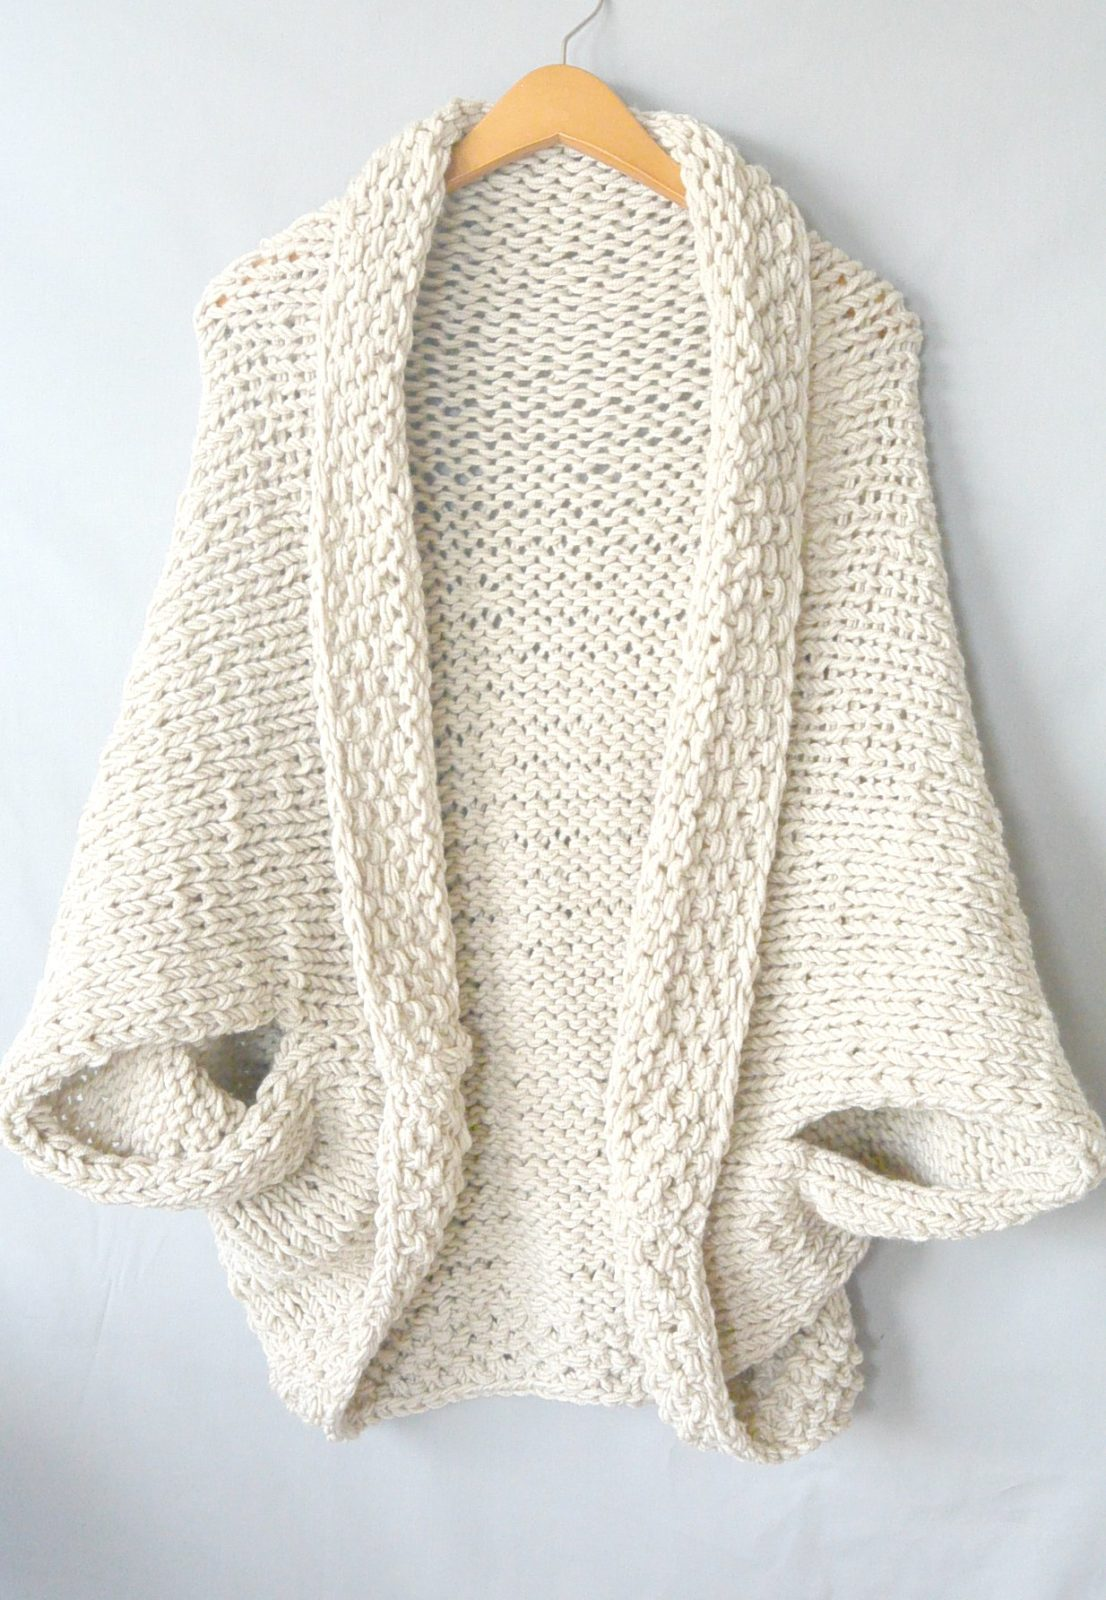 Easy Knitting Blanket Patterns : Easy Knit Blanket Sweater Pattern   Mama In A Stitch